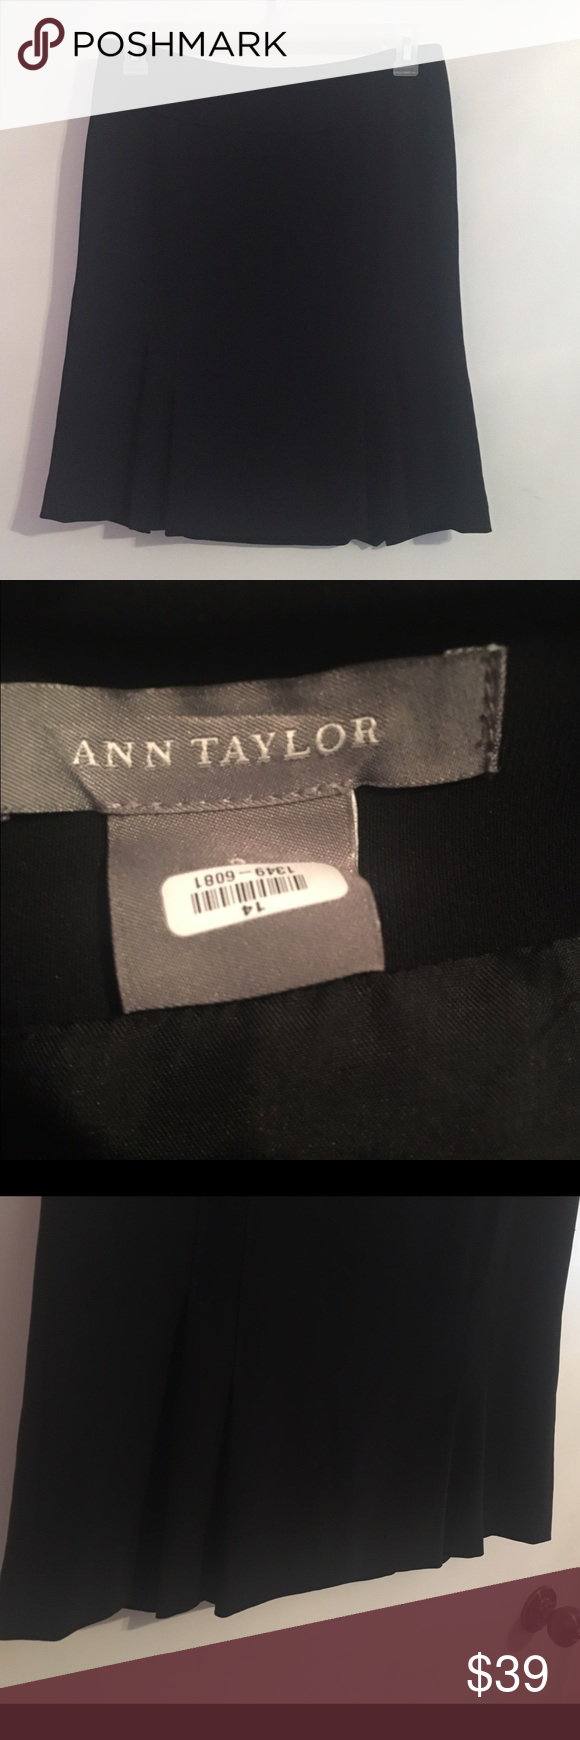 Ann Taylor Black Pleated Flare Skirt NWOT Ann Taylor Black Pleated Flare Skirt Sz 14 Pleats Flare out the bottom of Skirt. Absolutely gorgeous. Offers welcome! Ann Taylor Skirts